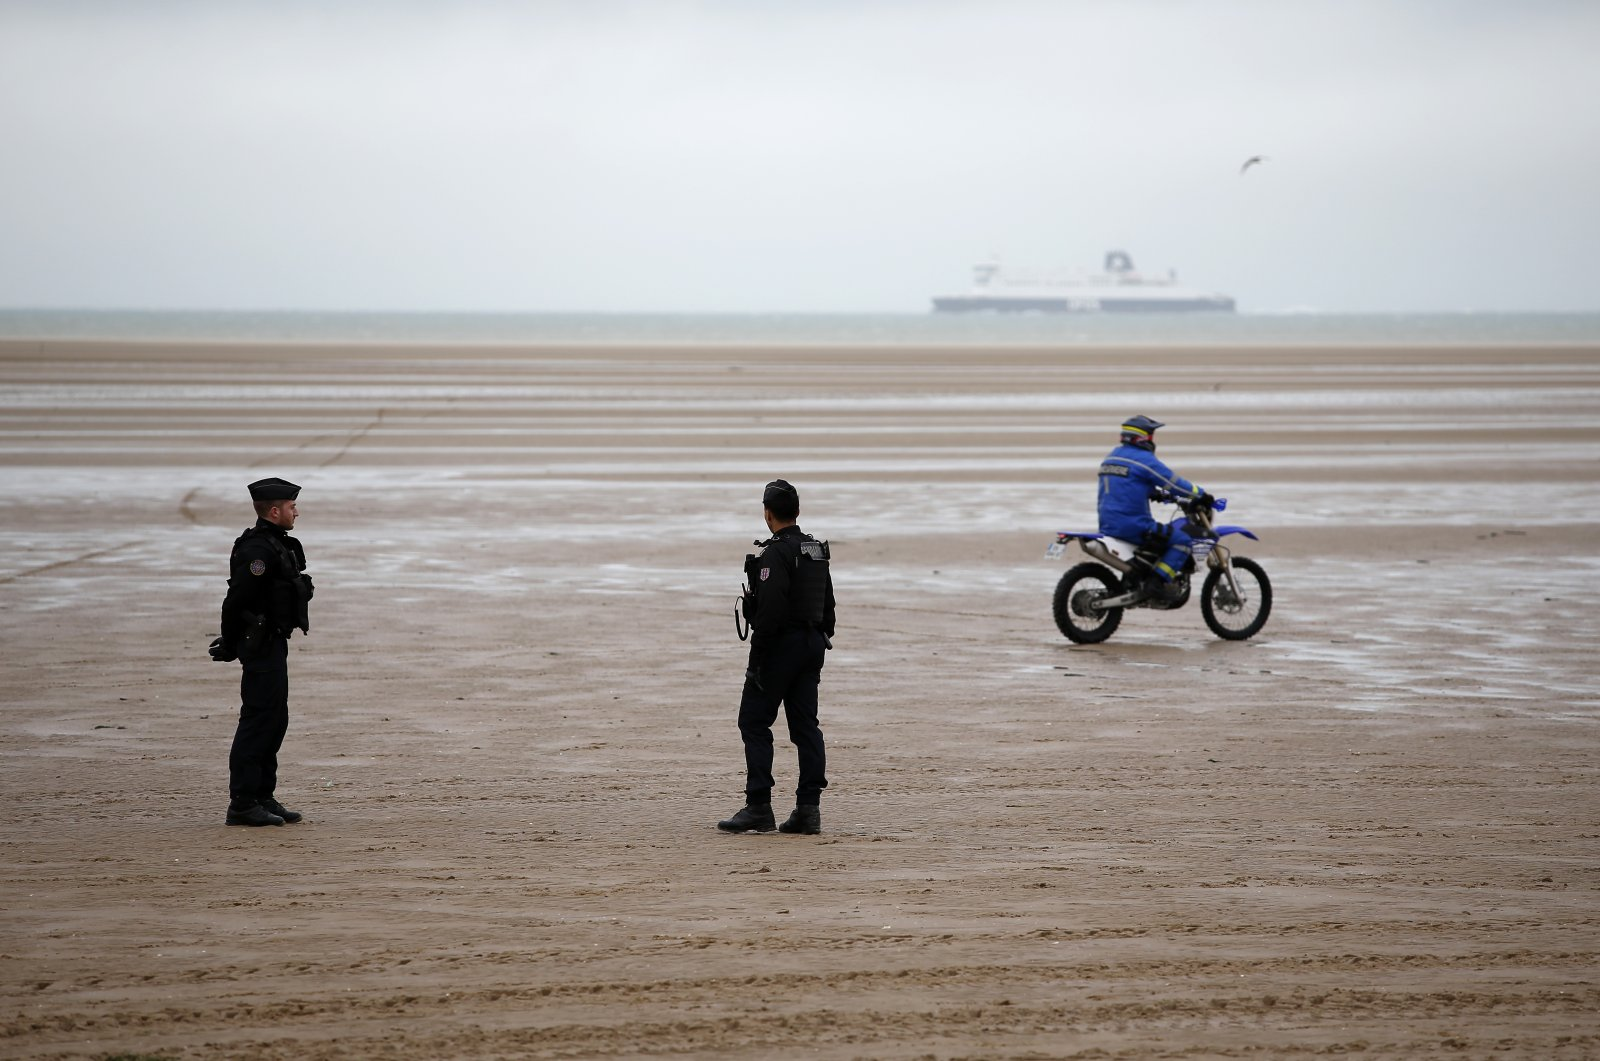 Police officers patrol on the beach of Oye-Plage, northern France, near Calais on Jan. 31, 2020. (AP Photo/Michel Spingler, File)